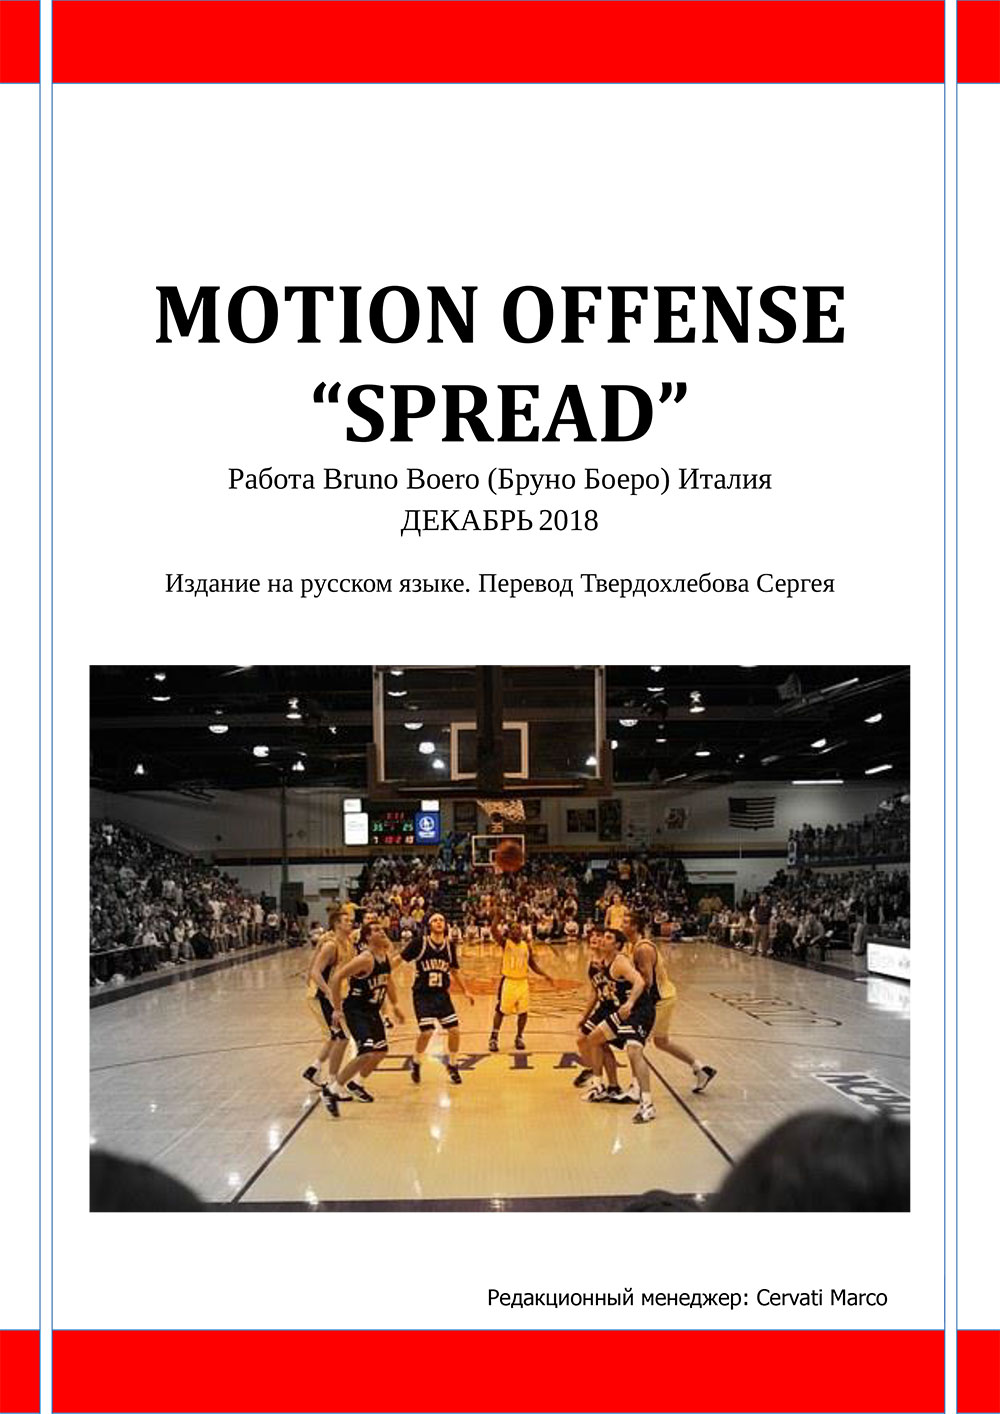 Motion offense in lingua Russa